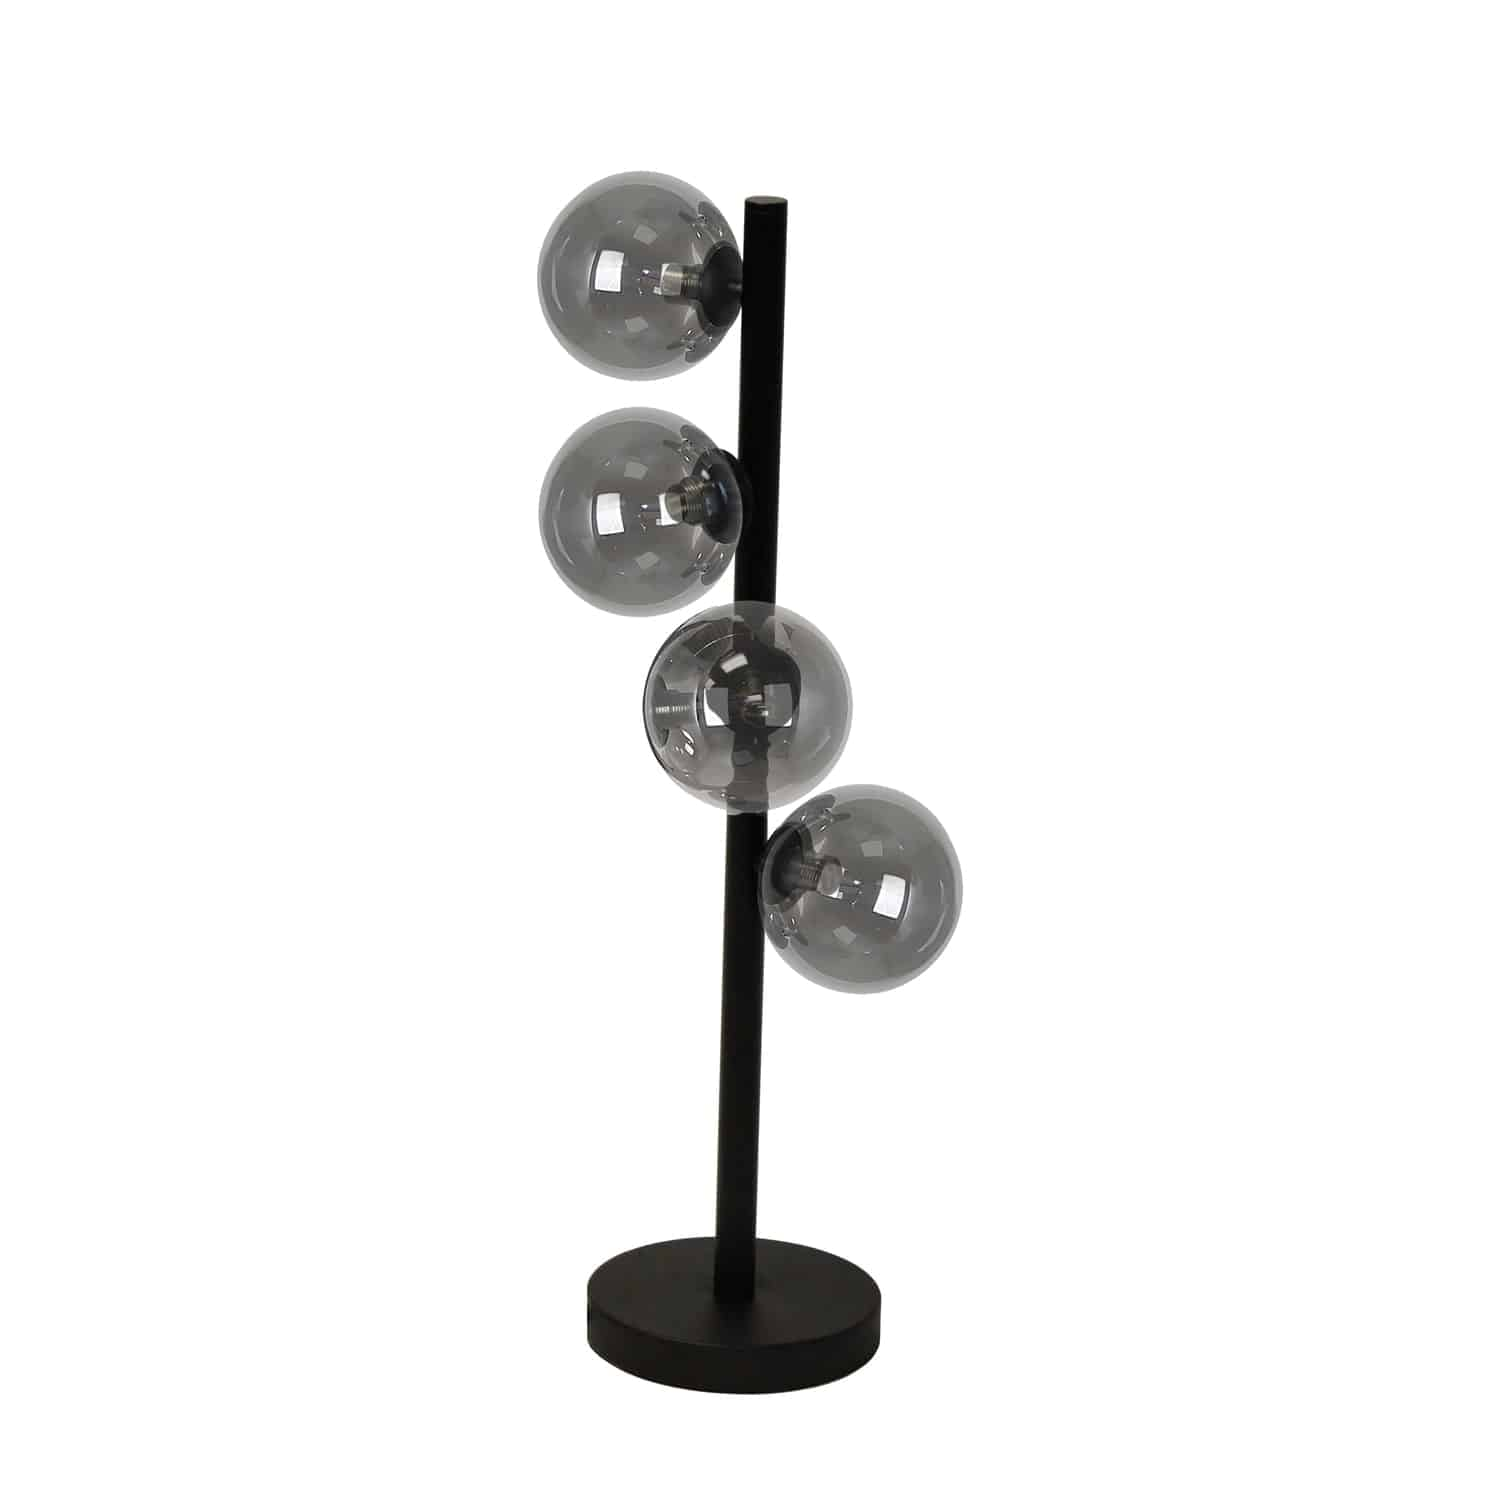 4 Light Halogen Table Lamp, Matte Black Finish with Smoked Glass